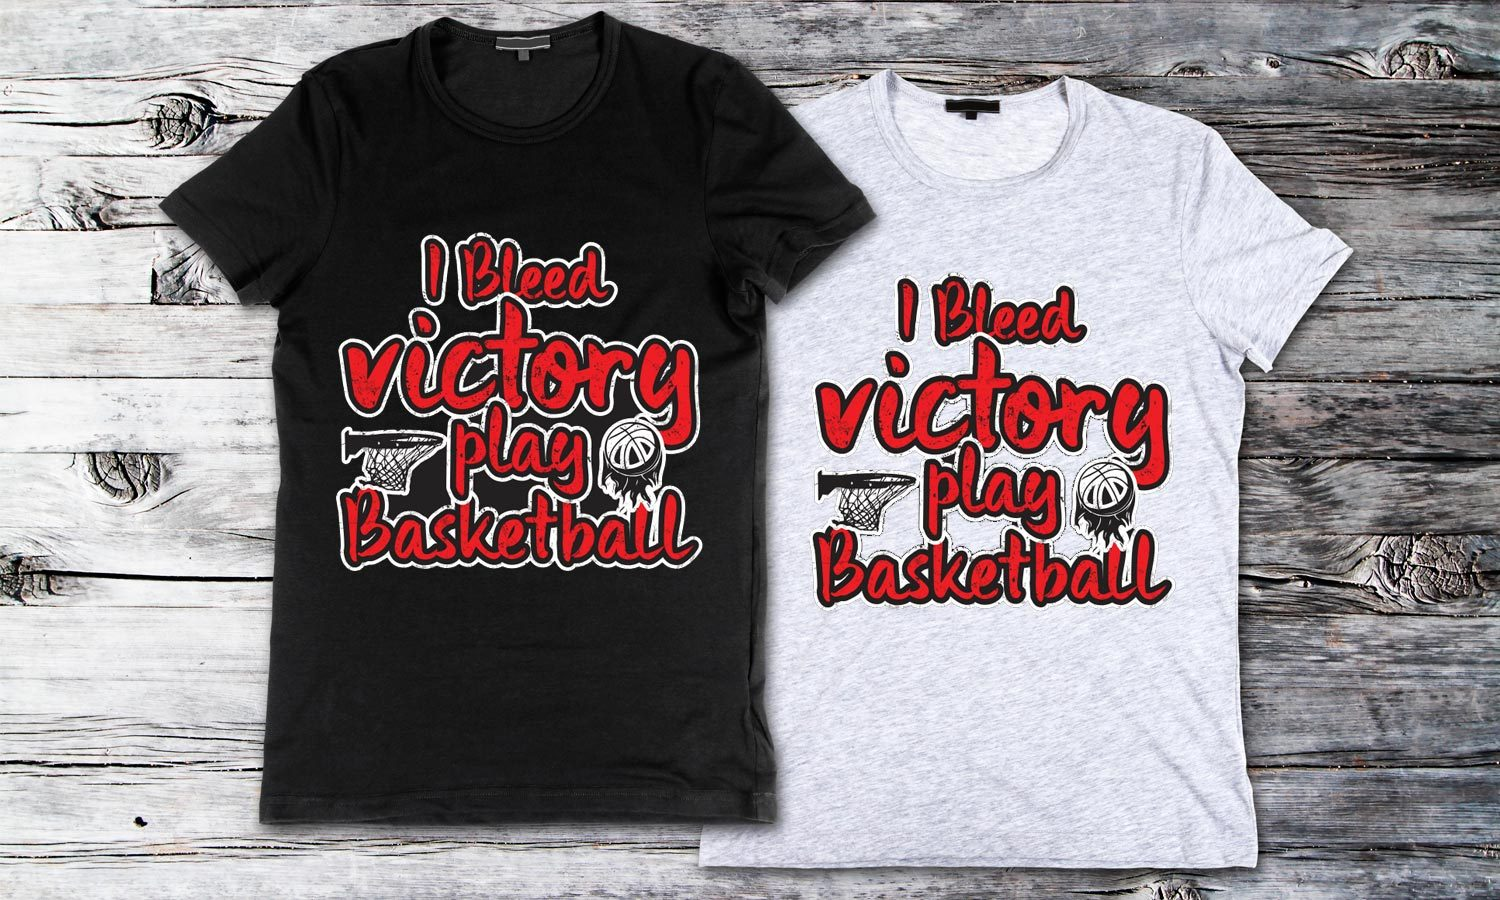 Victory Basketball - Printed T-Shirt for Men, Women and Kids - TS243